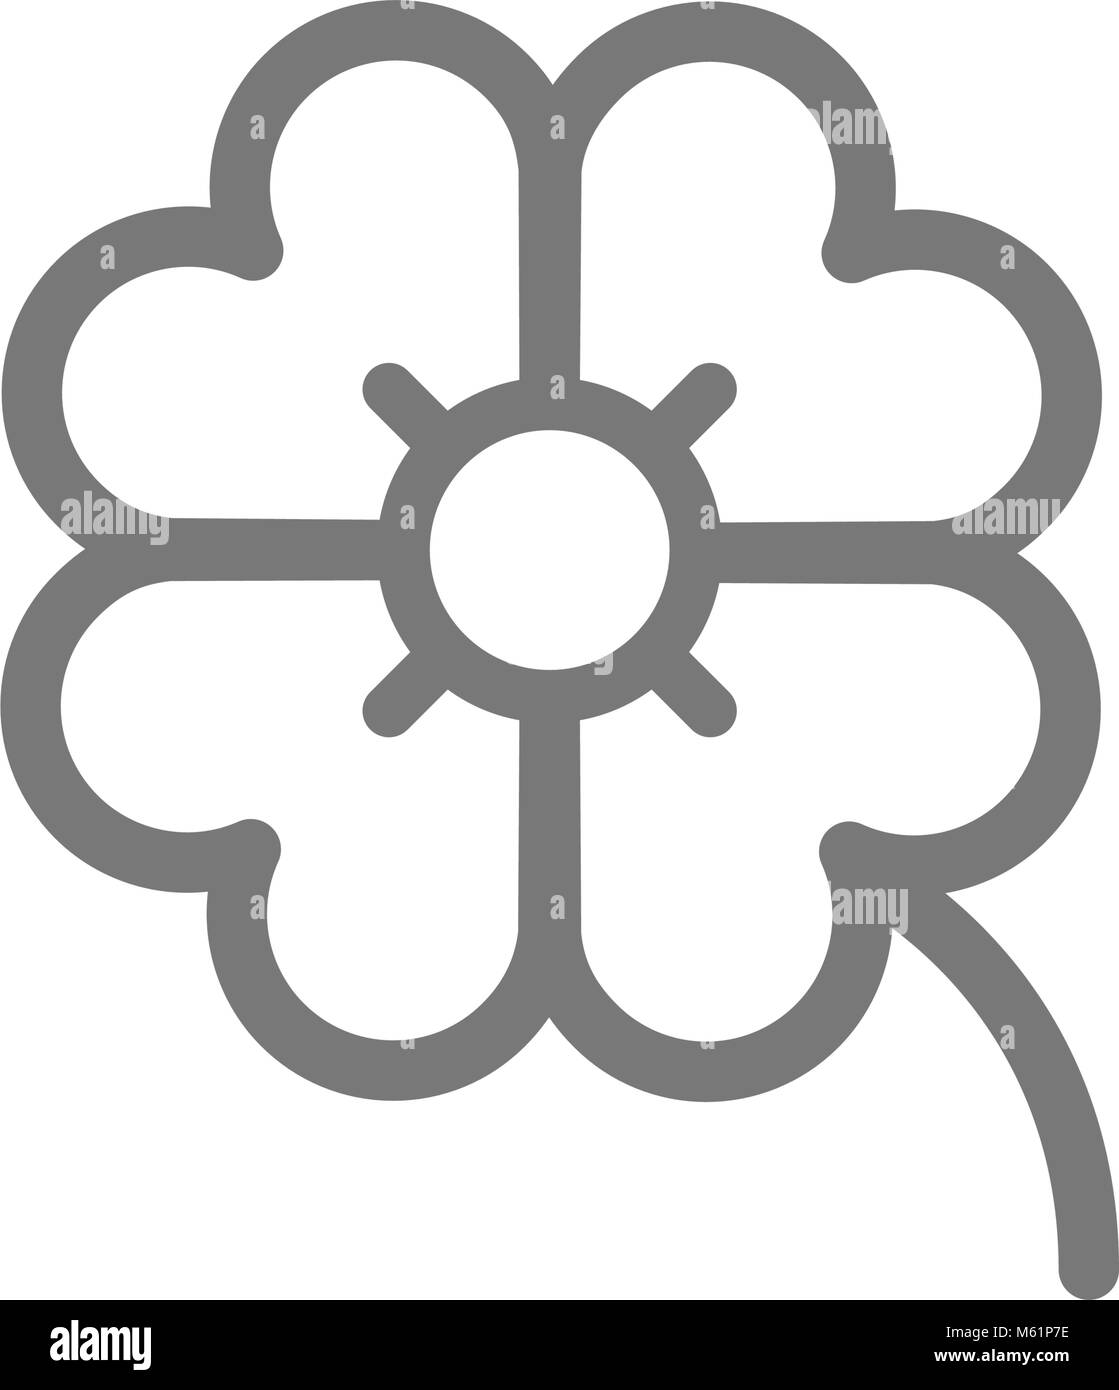 Four Leaf Clover Black And White Stock Photos Images Alamy